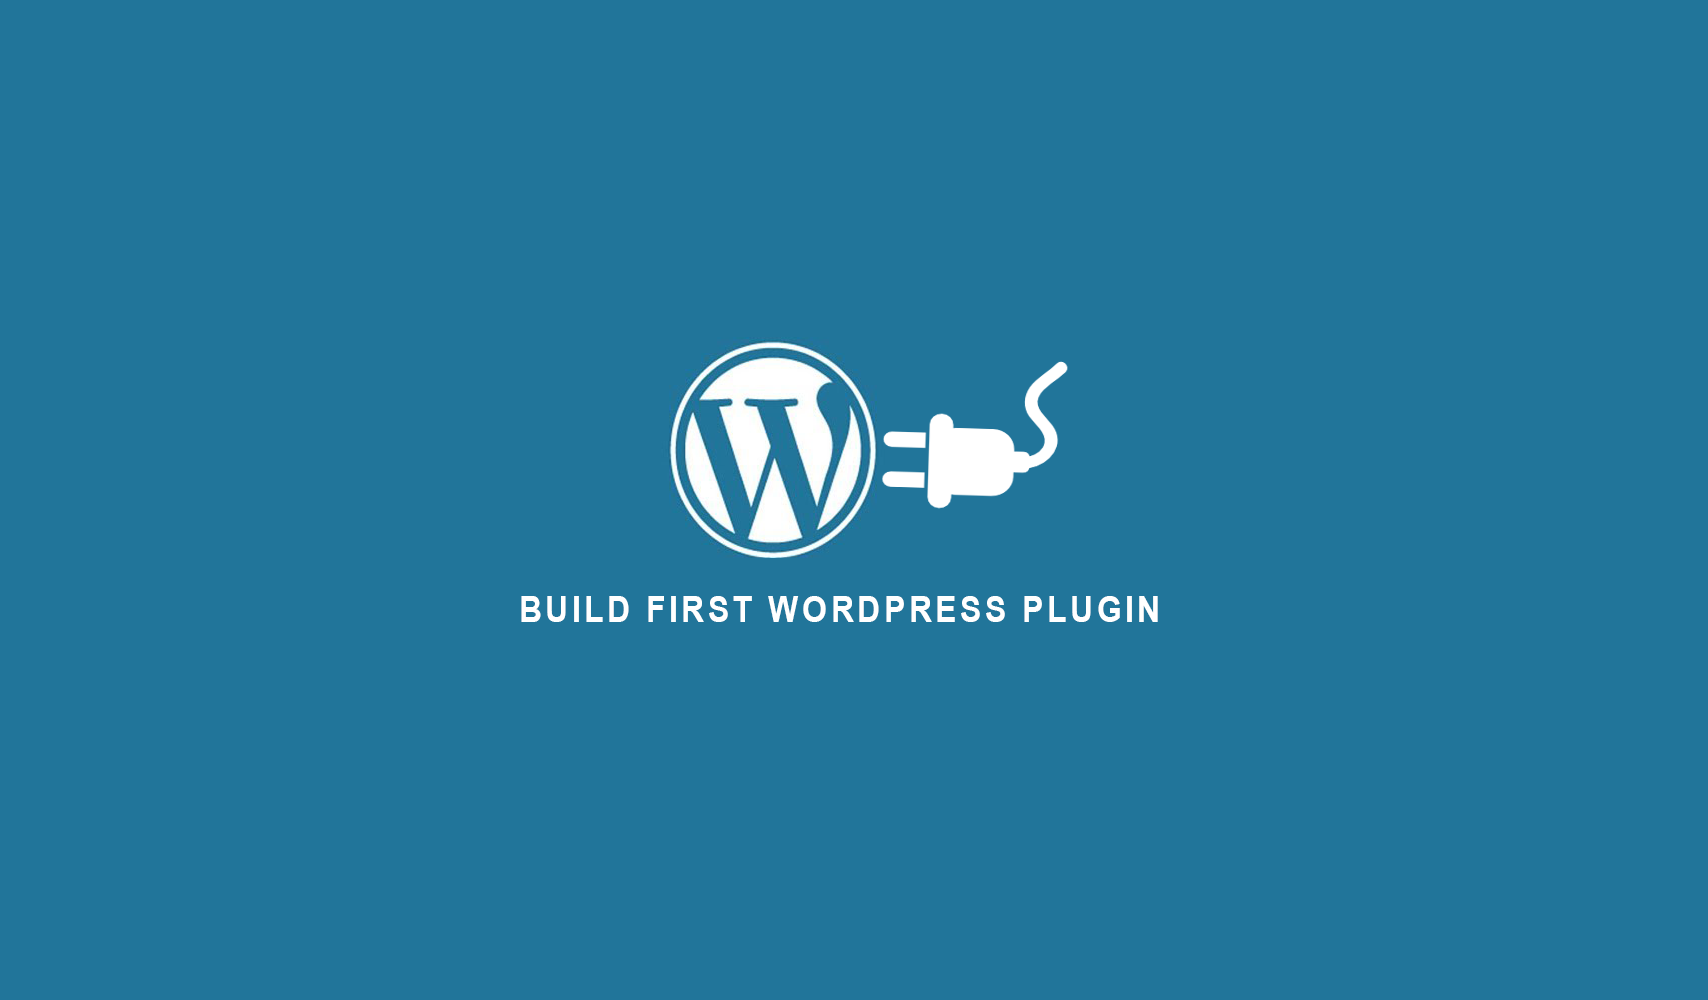 Build first WordPress Plugin